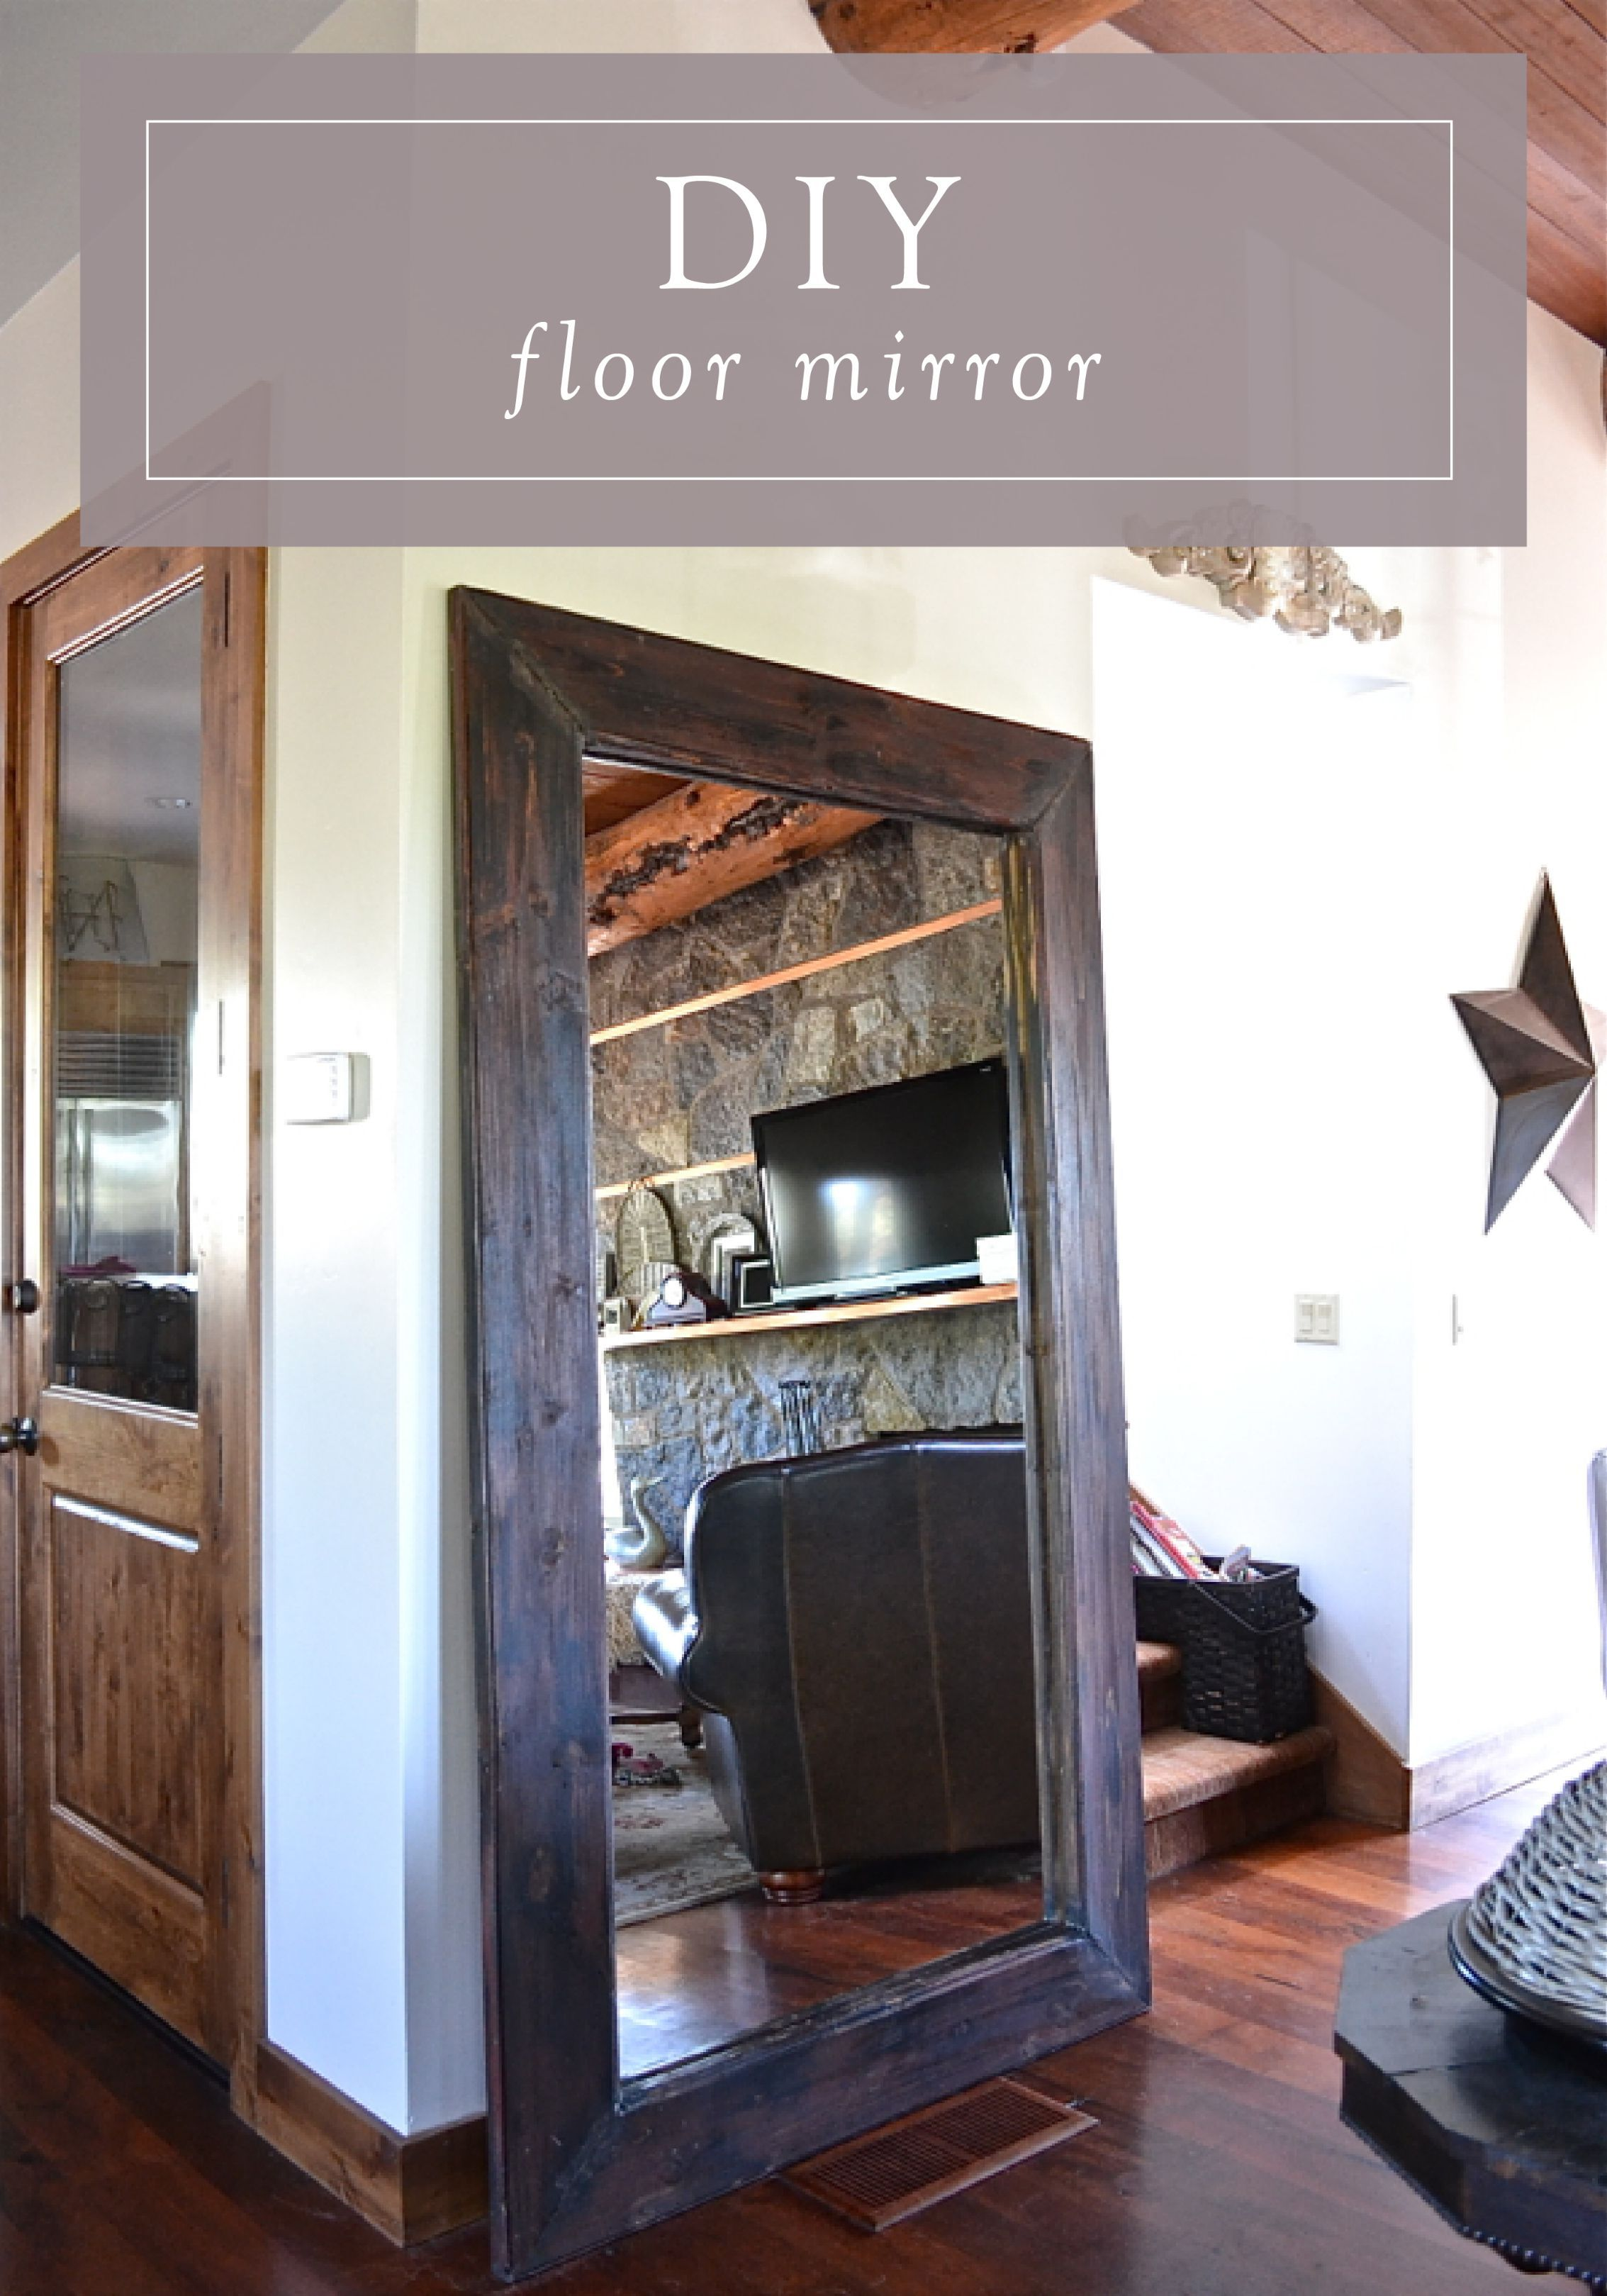 Floor Mirrors With Images Diy